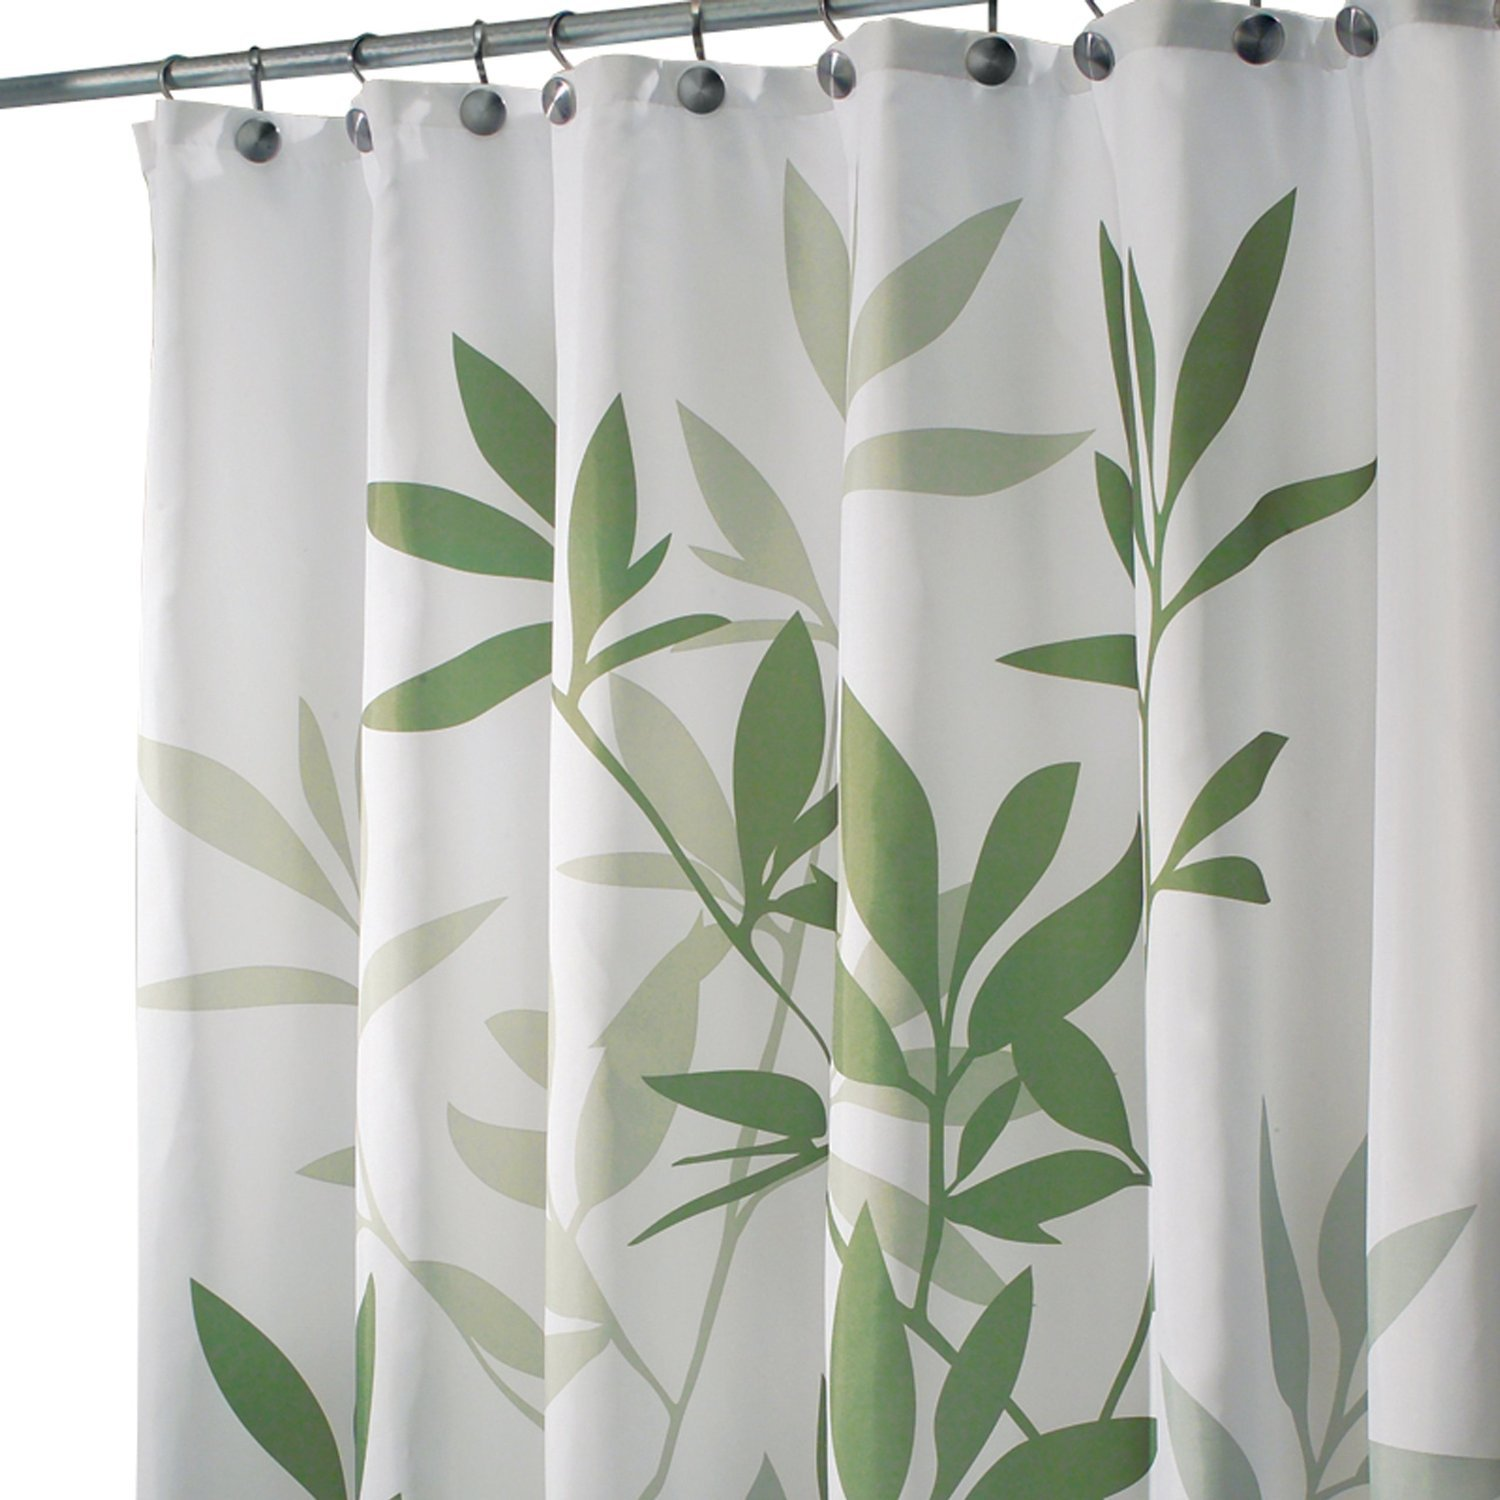 Amazon.com: InterDesign 35634 Leaves Fabric Shower Curtain - Long ...